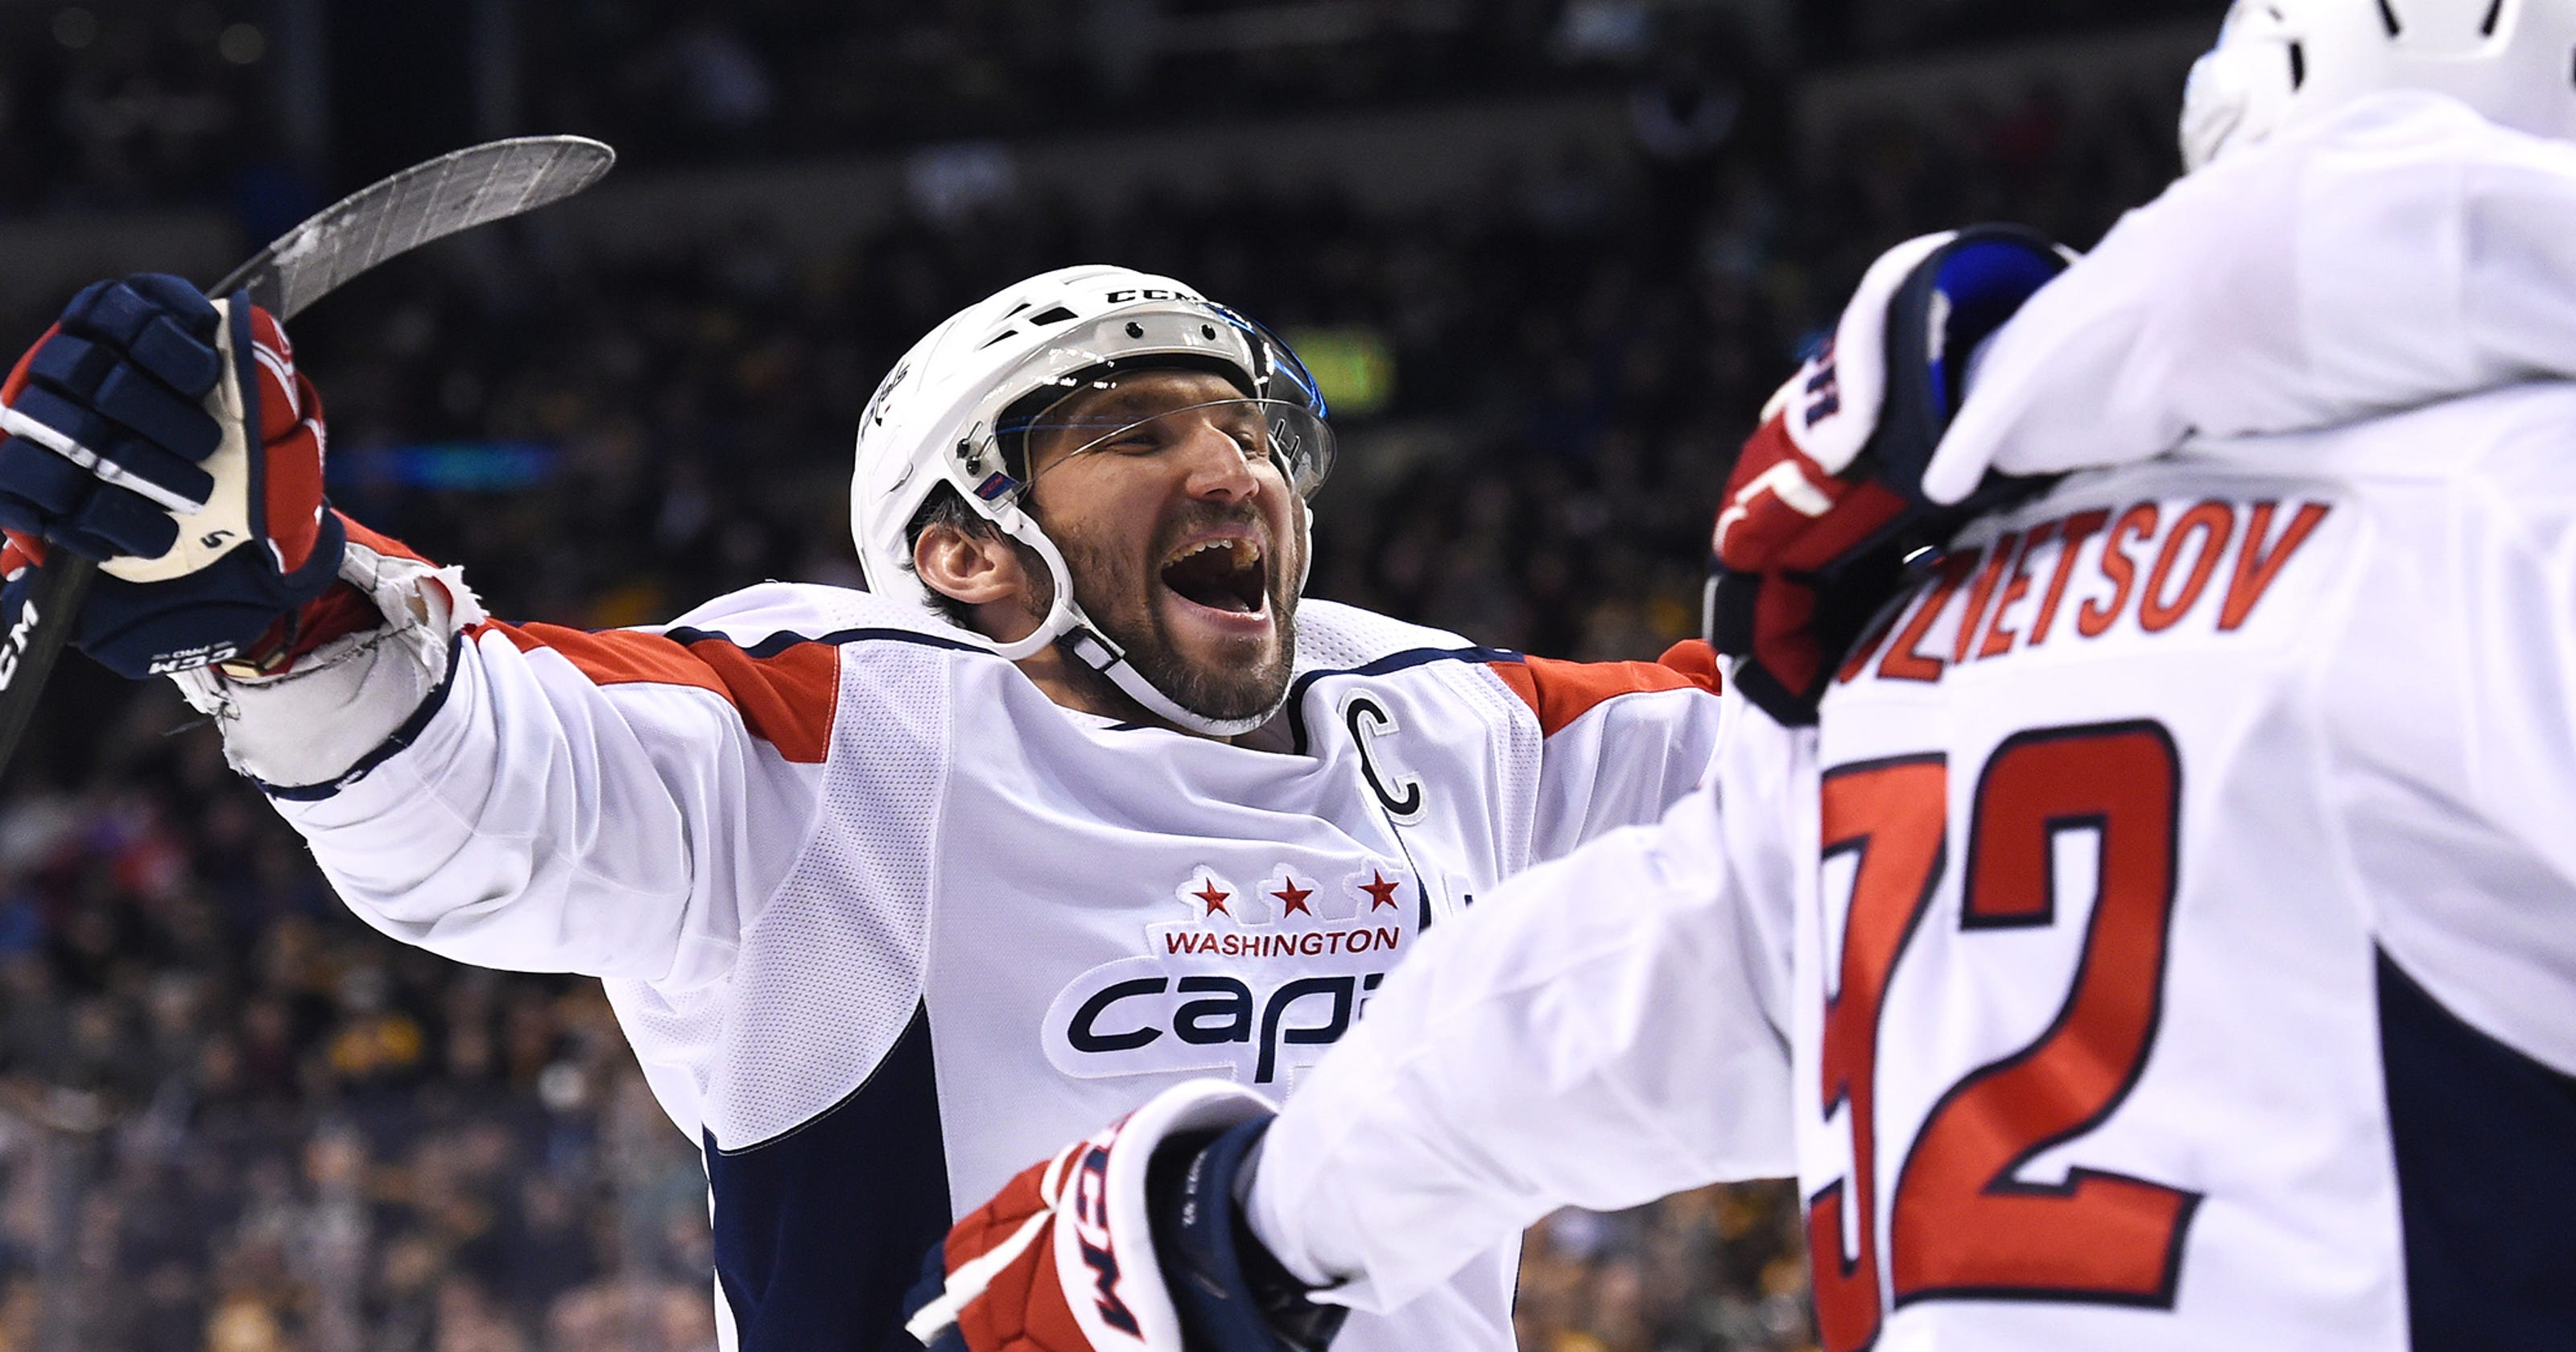 362beaf2446 Alex Ovechkin on pace for 50-goal season at 32